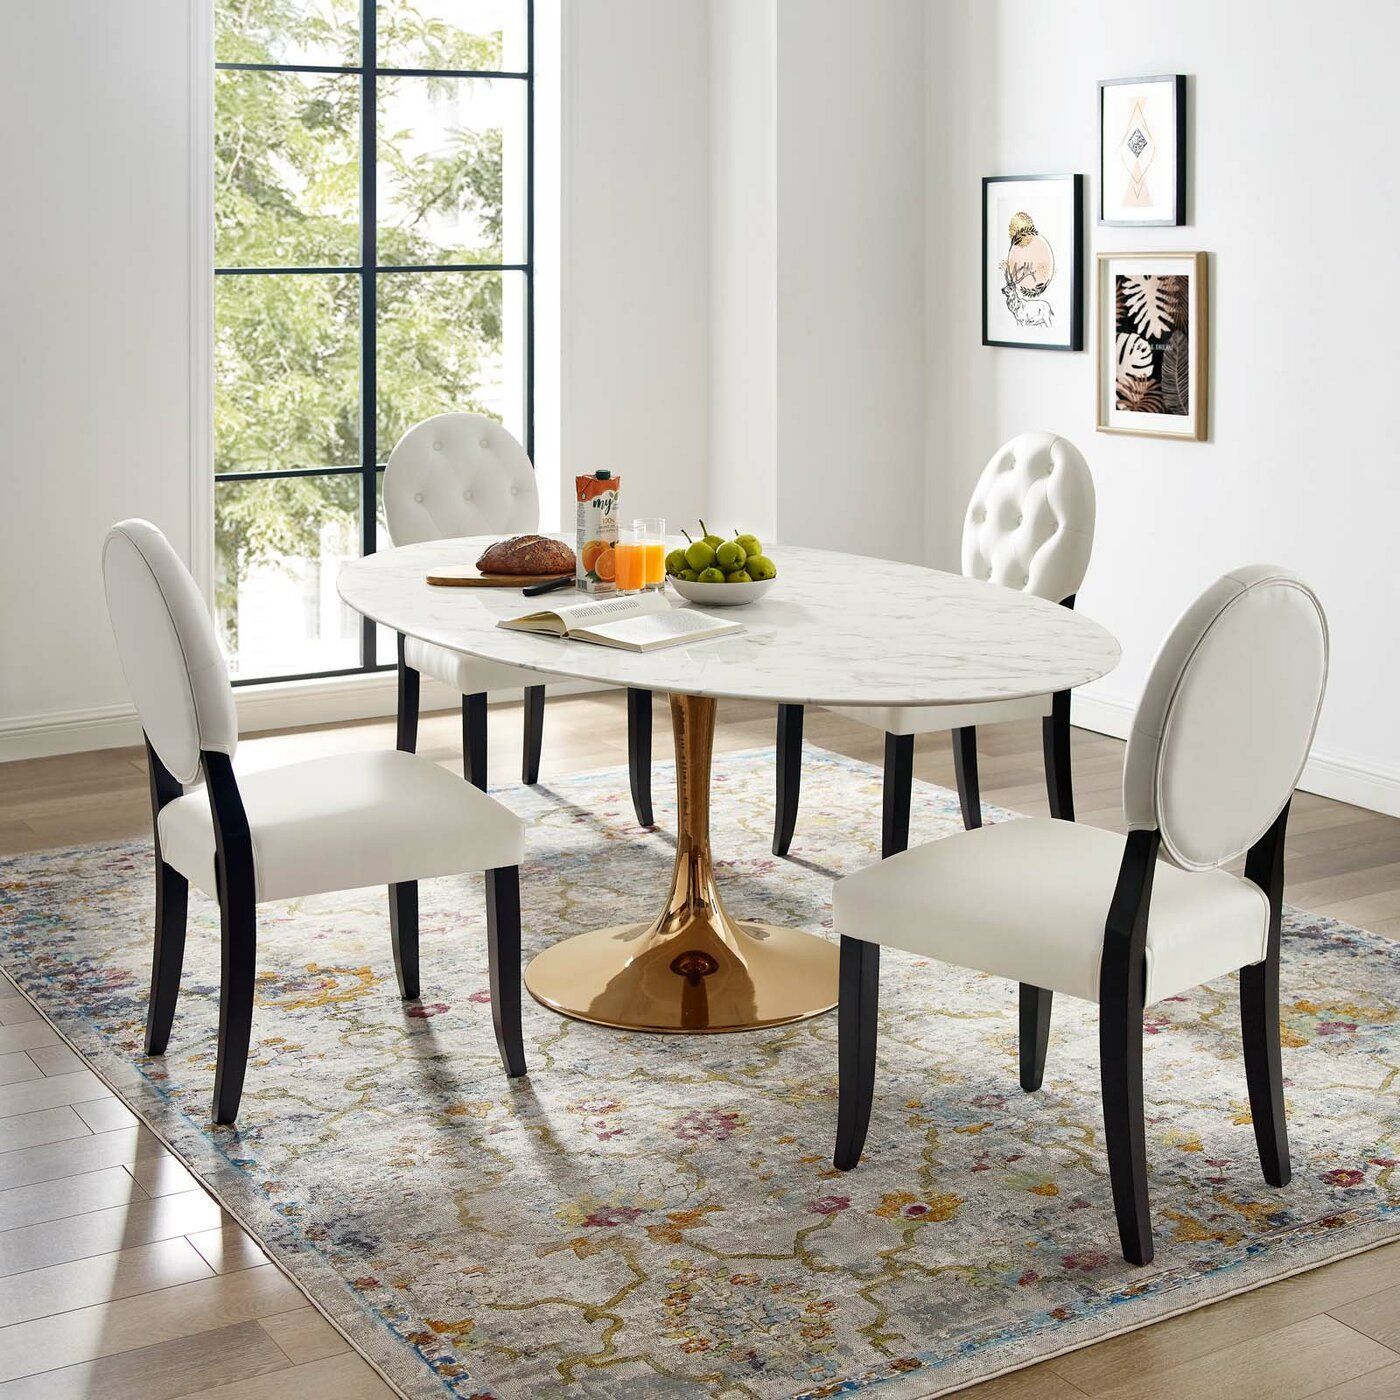 Langley Street Kylee Artificial Marble Oval Shaped Dining Table Reviews Wayfair Oval Table Dining Oval Marble Dining Tables Oval Dining Room Table